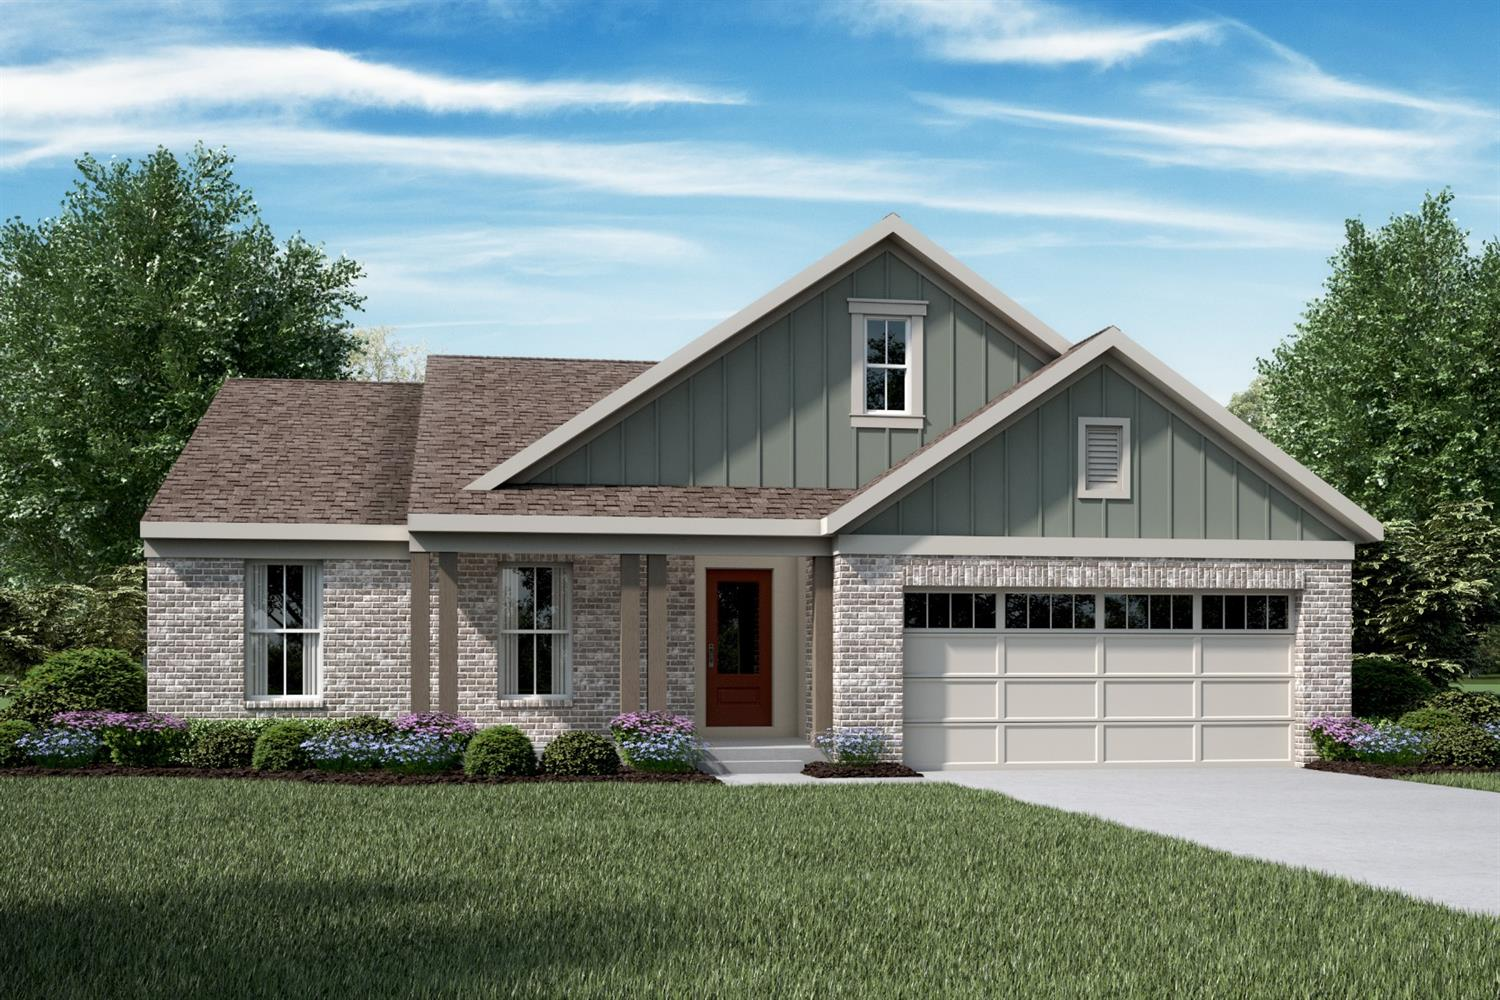 485 Clearsprings Dr Springboro, OH